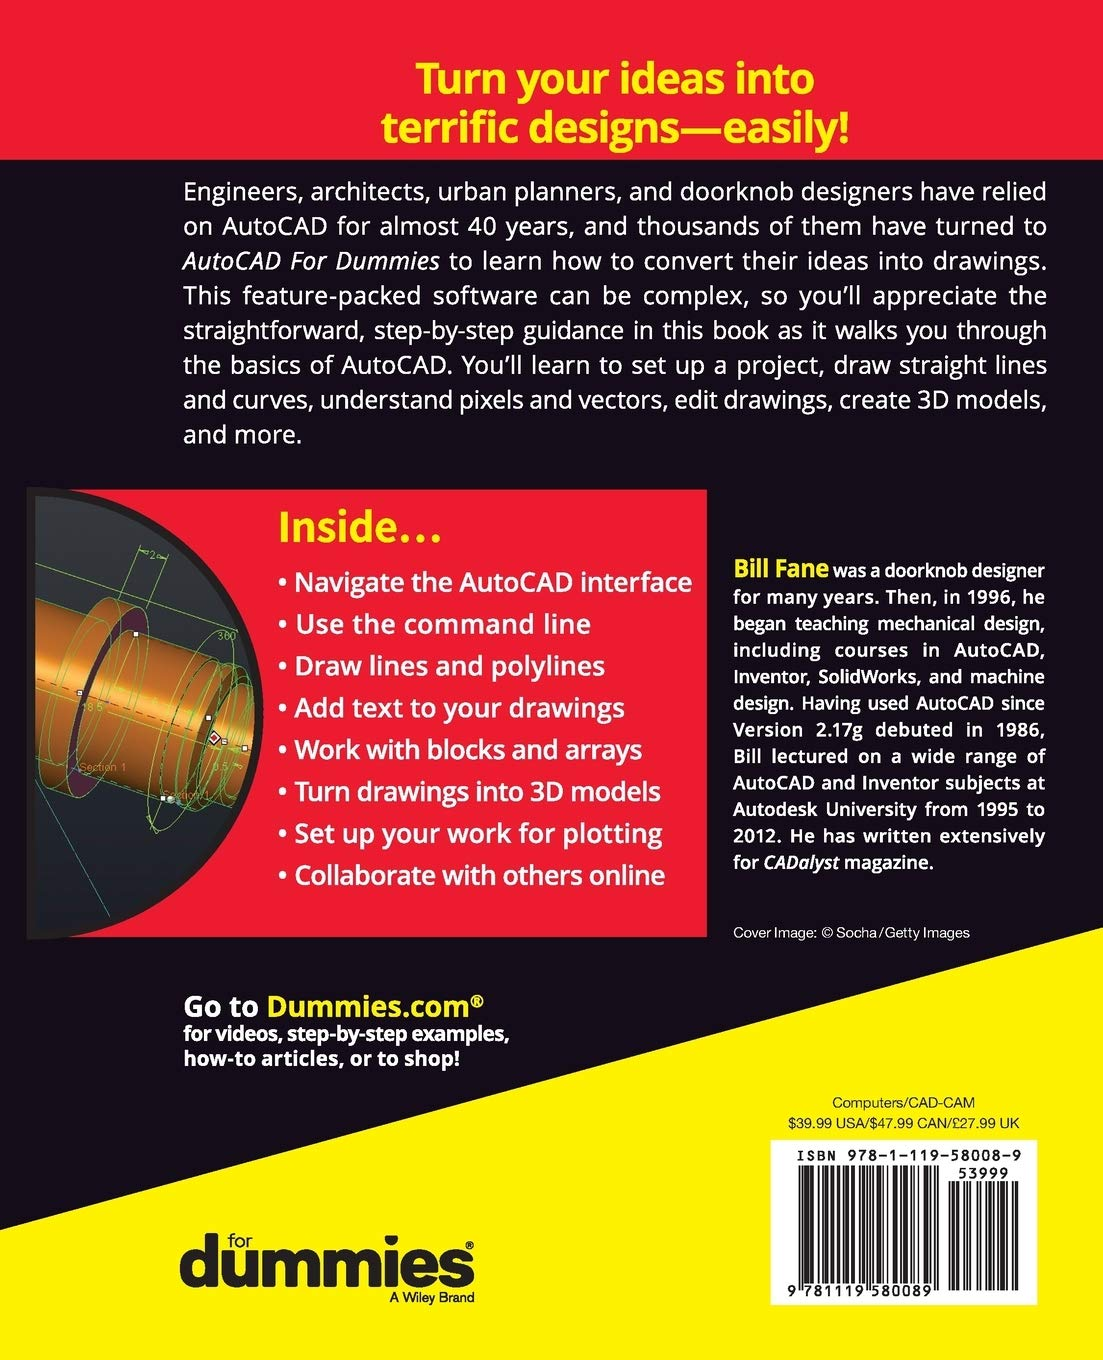 AutoCAD For Dummies, 18th Edition: Amazon.es: Fane, Bill: Libros en idiomas extranjeros